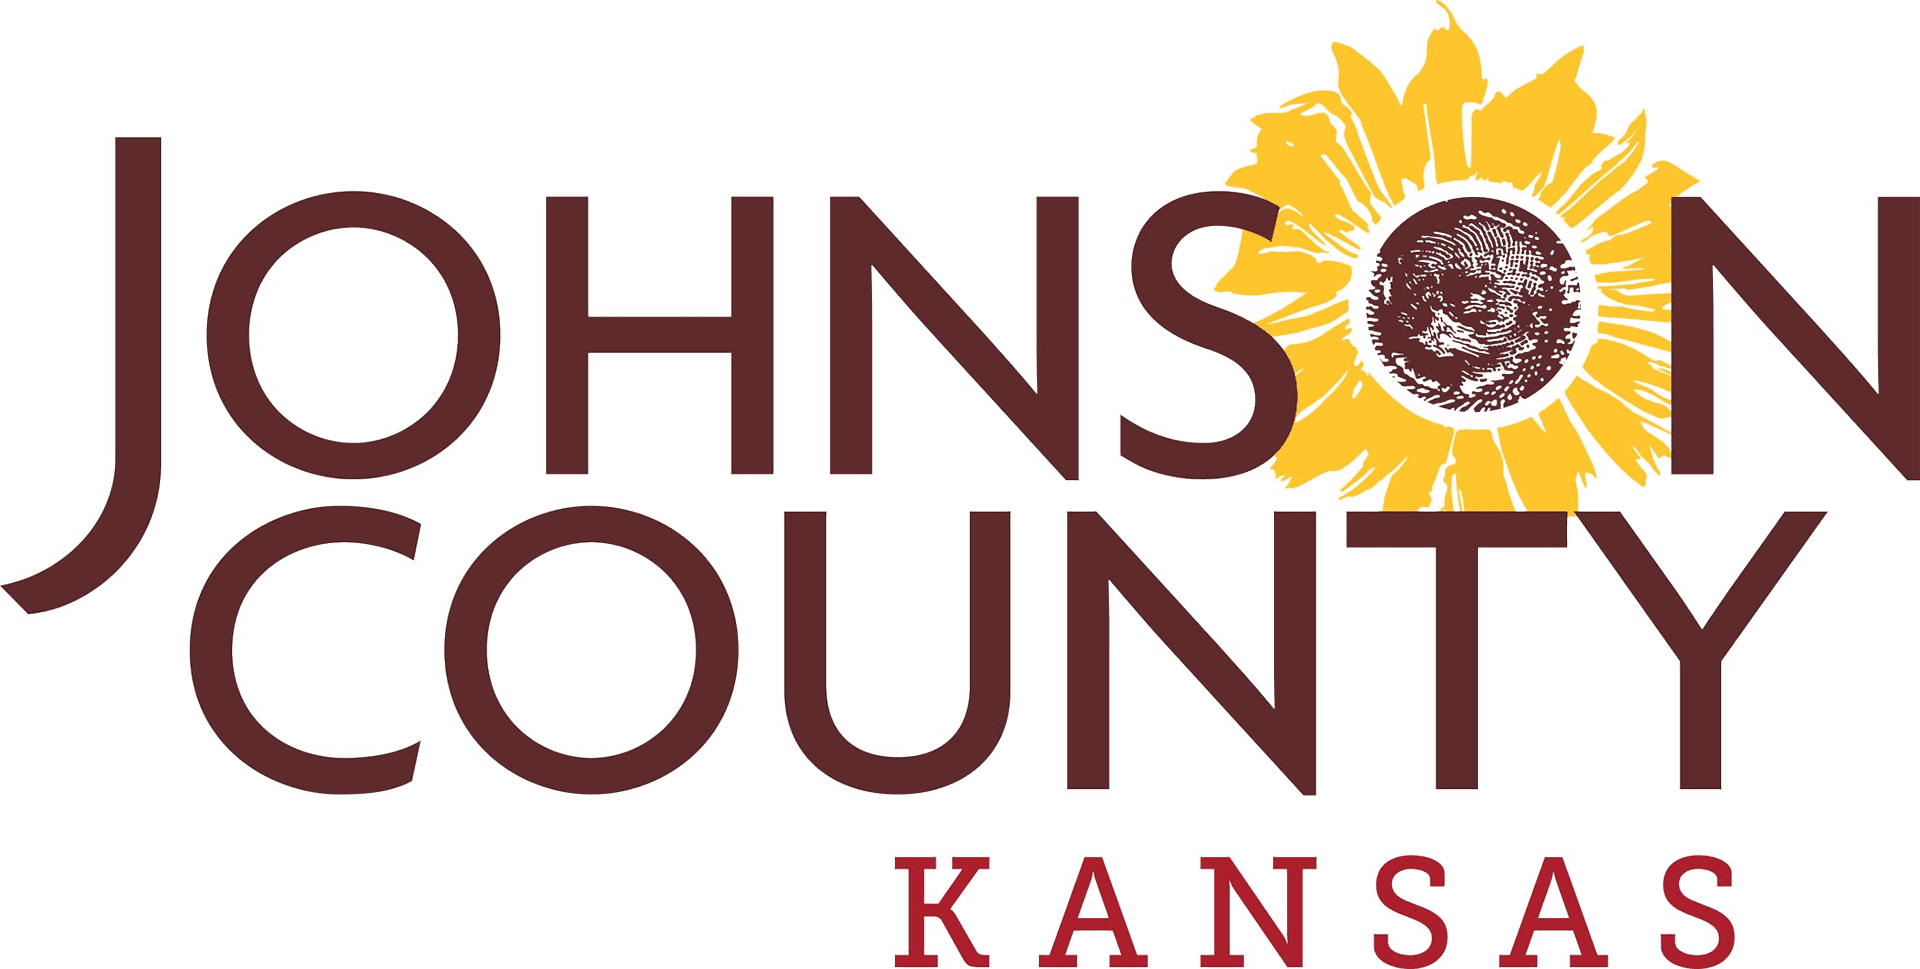 The logo of Johnson County, Kansas